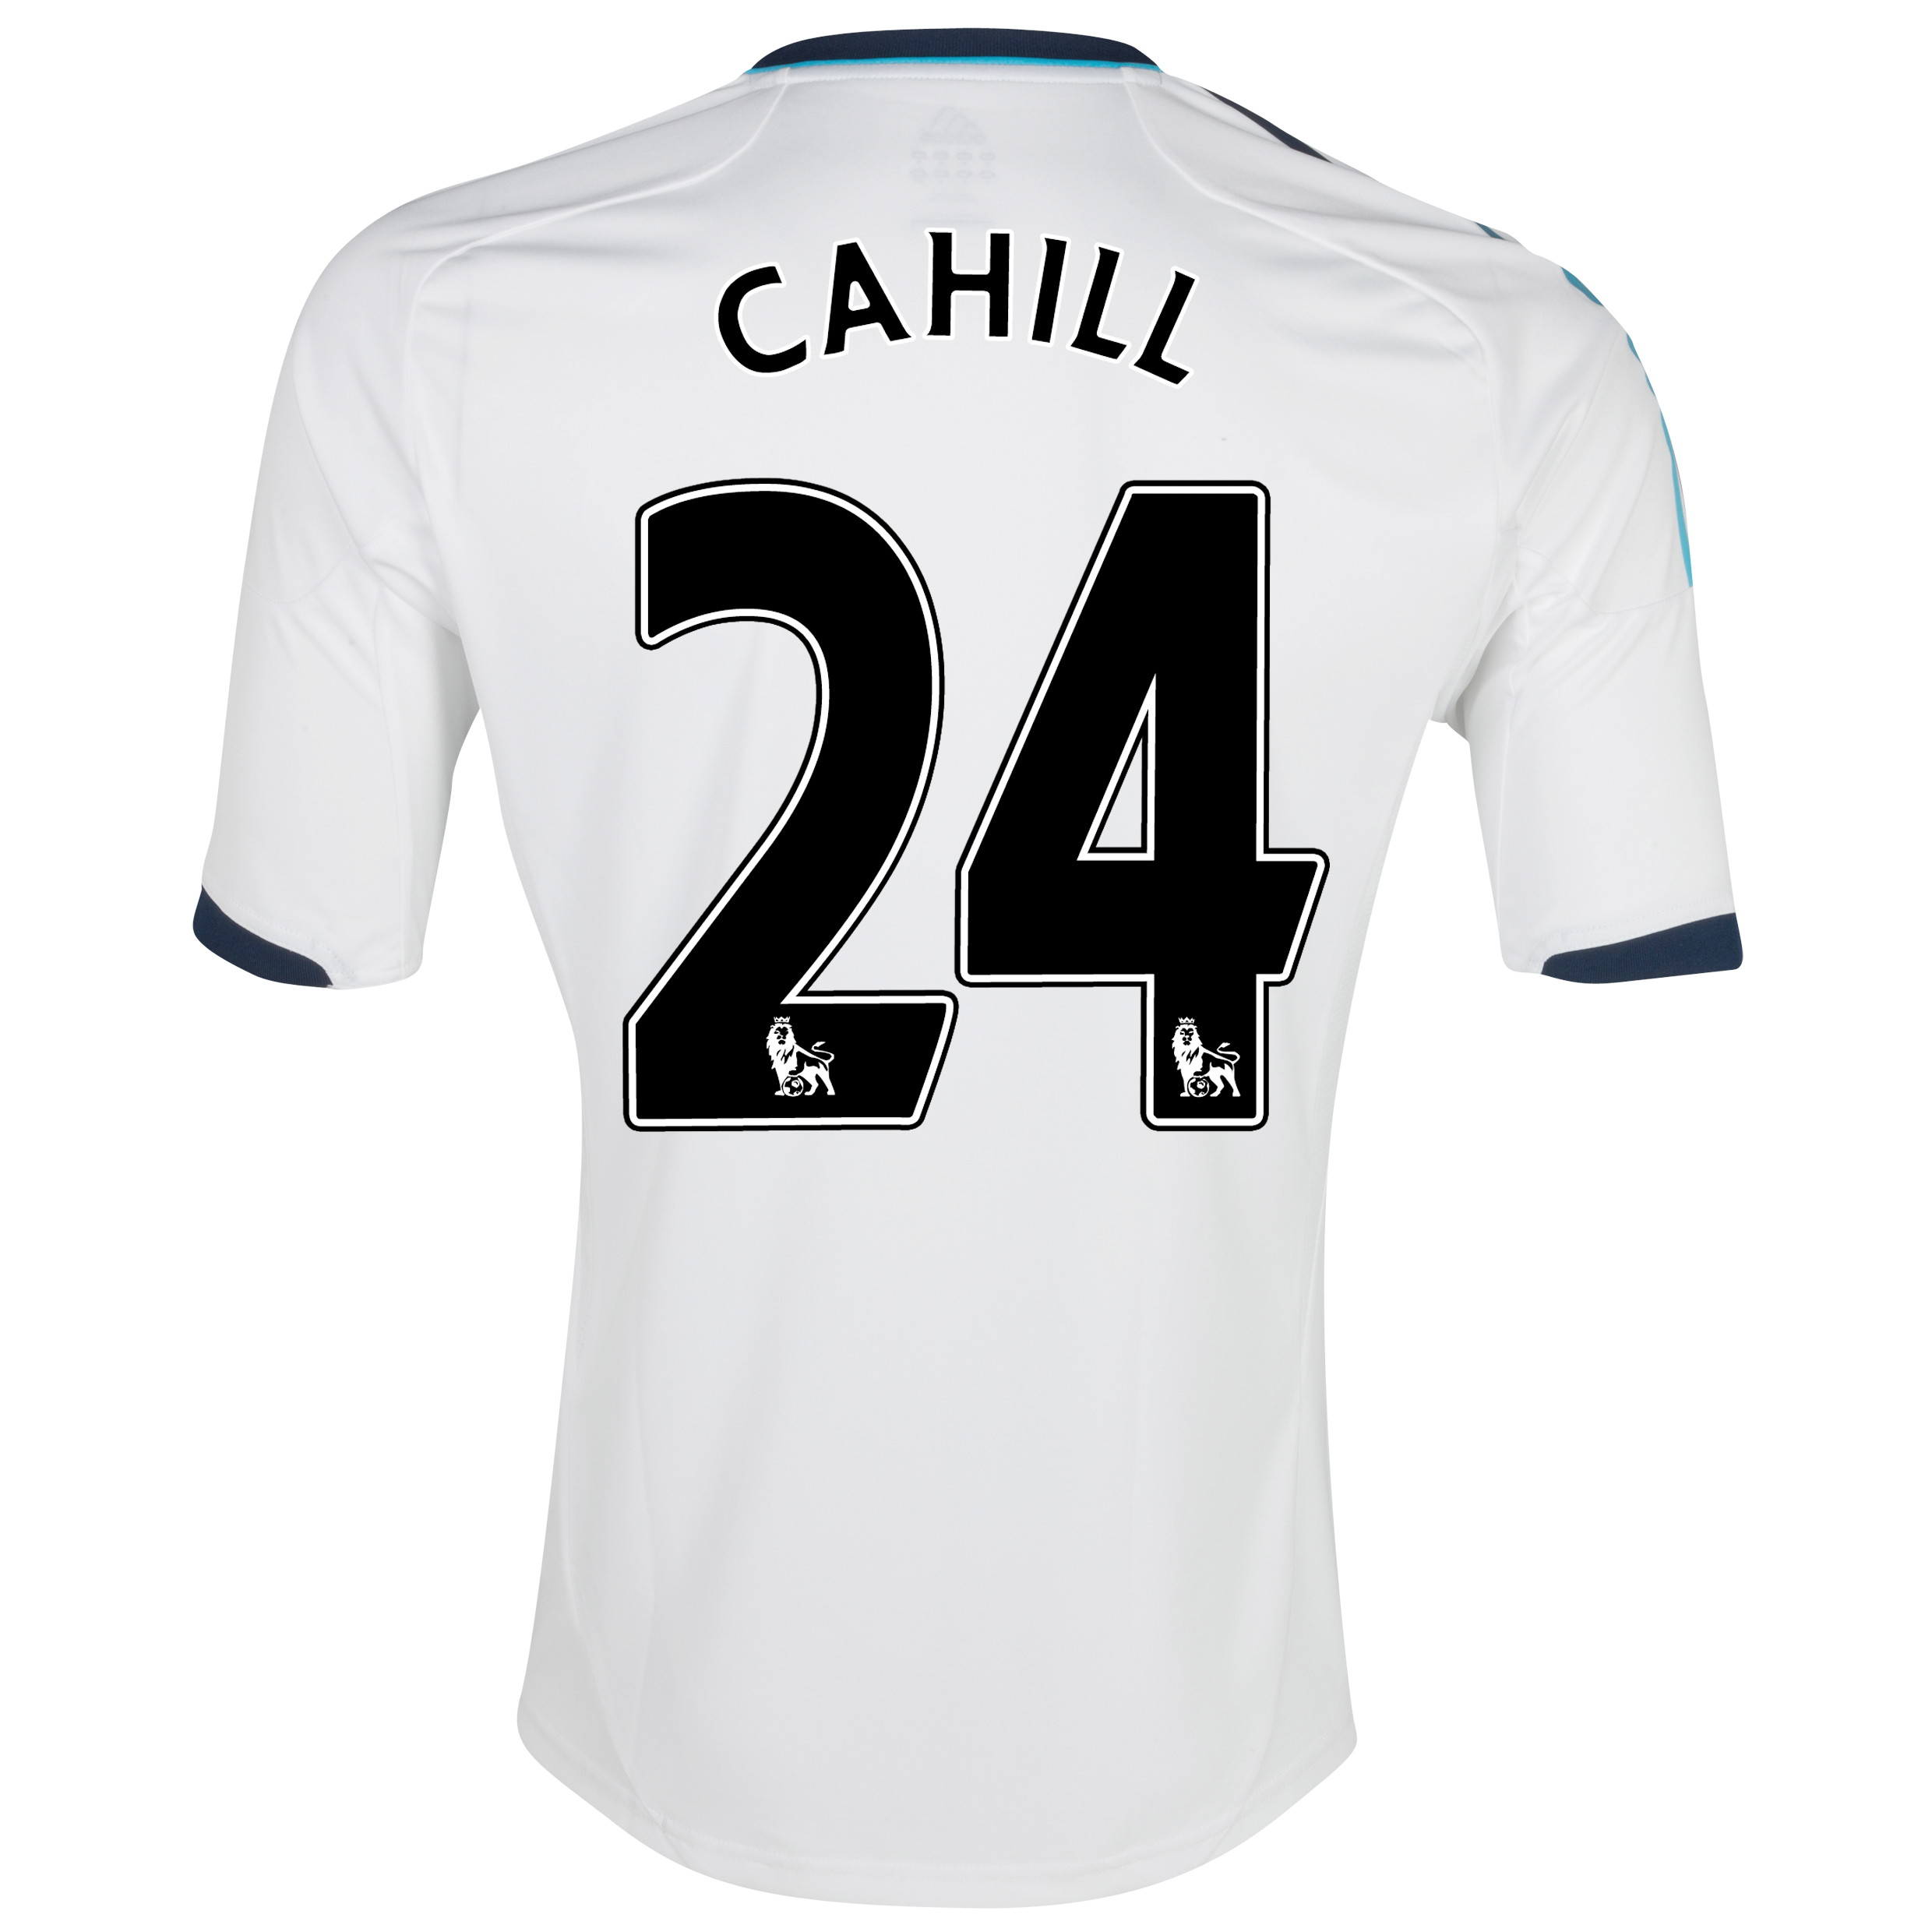 Chelsea Away Shirt 2012/13 - Youths with Cahill 24 printing